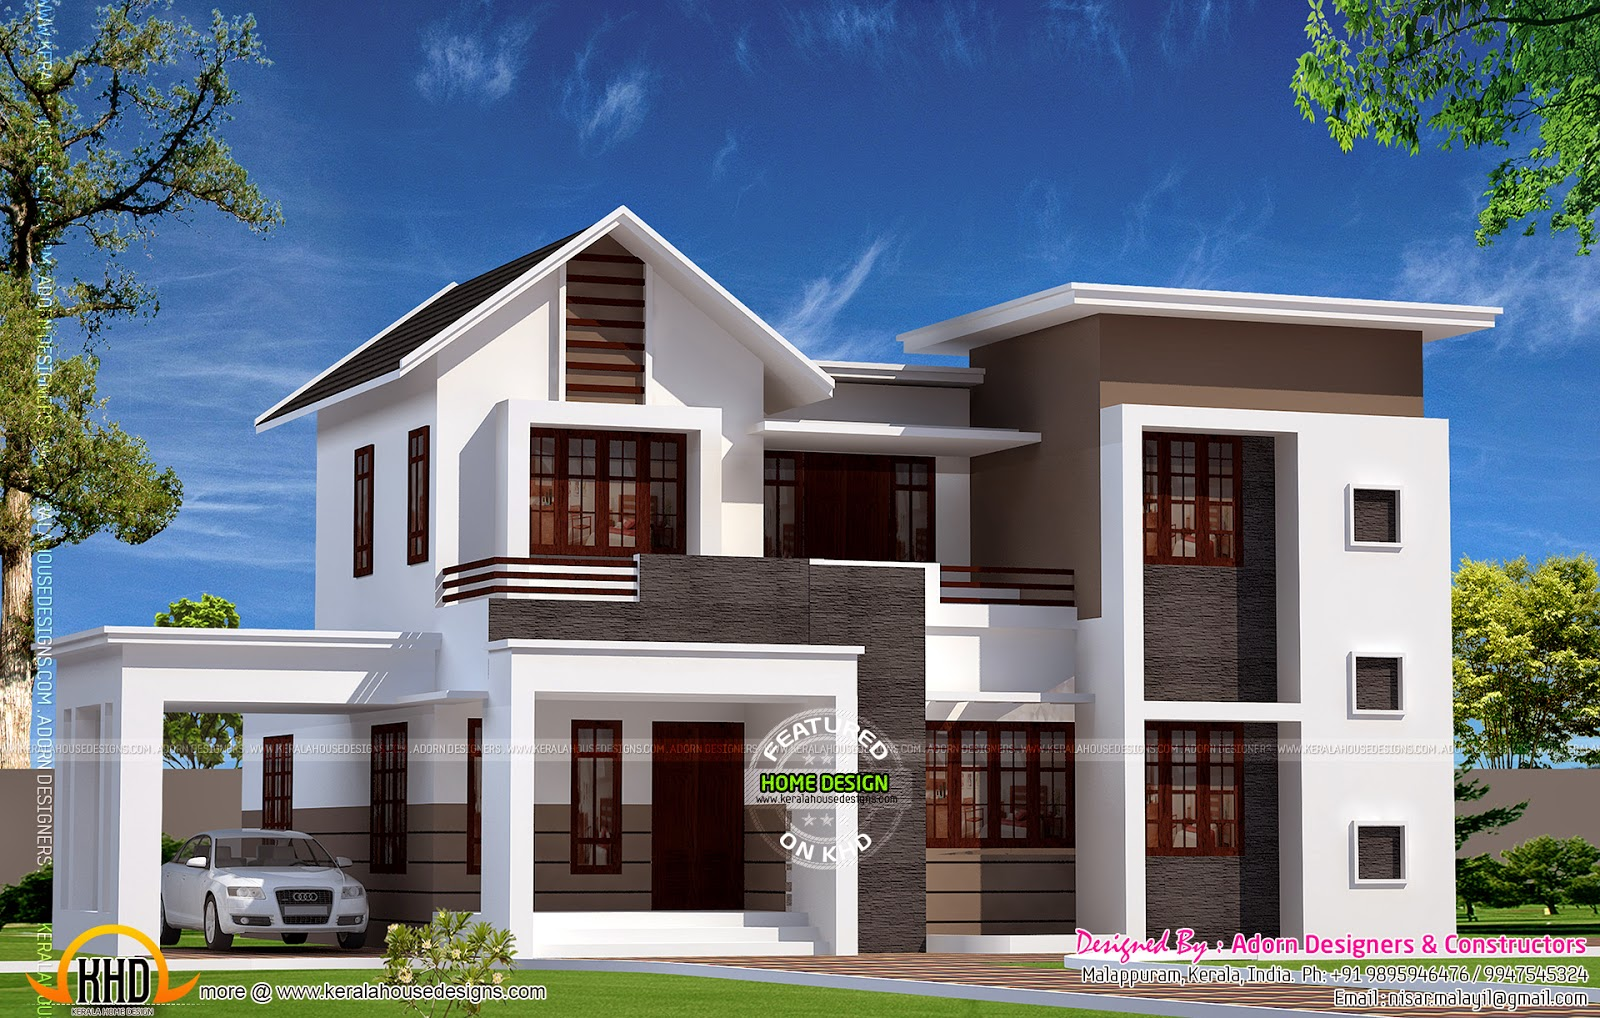 New house design in 1900 sq feet kerala home design and floor plans In home design